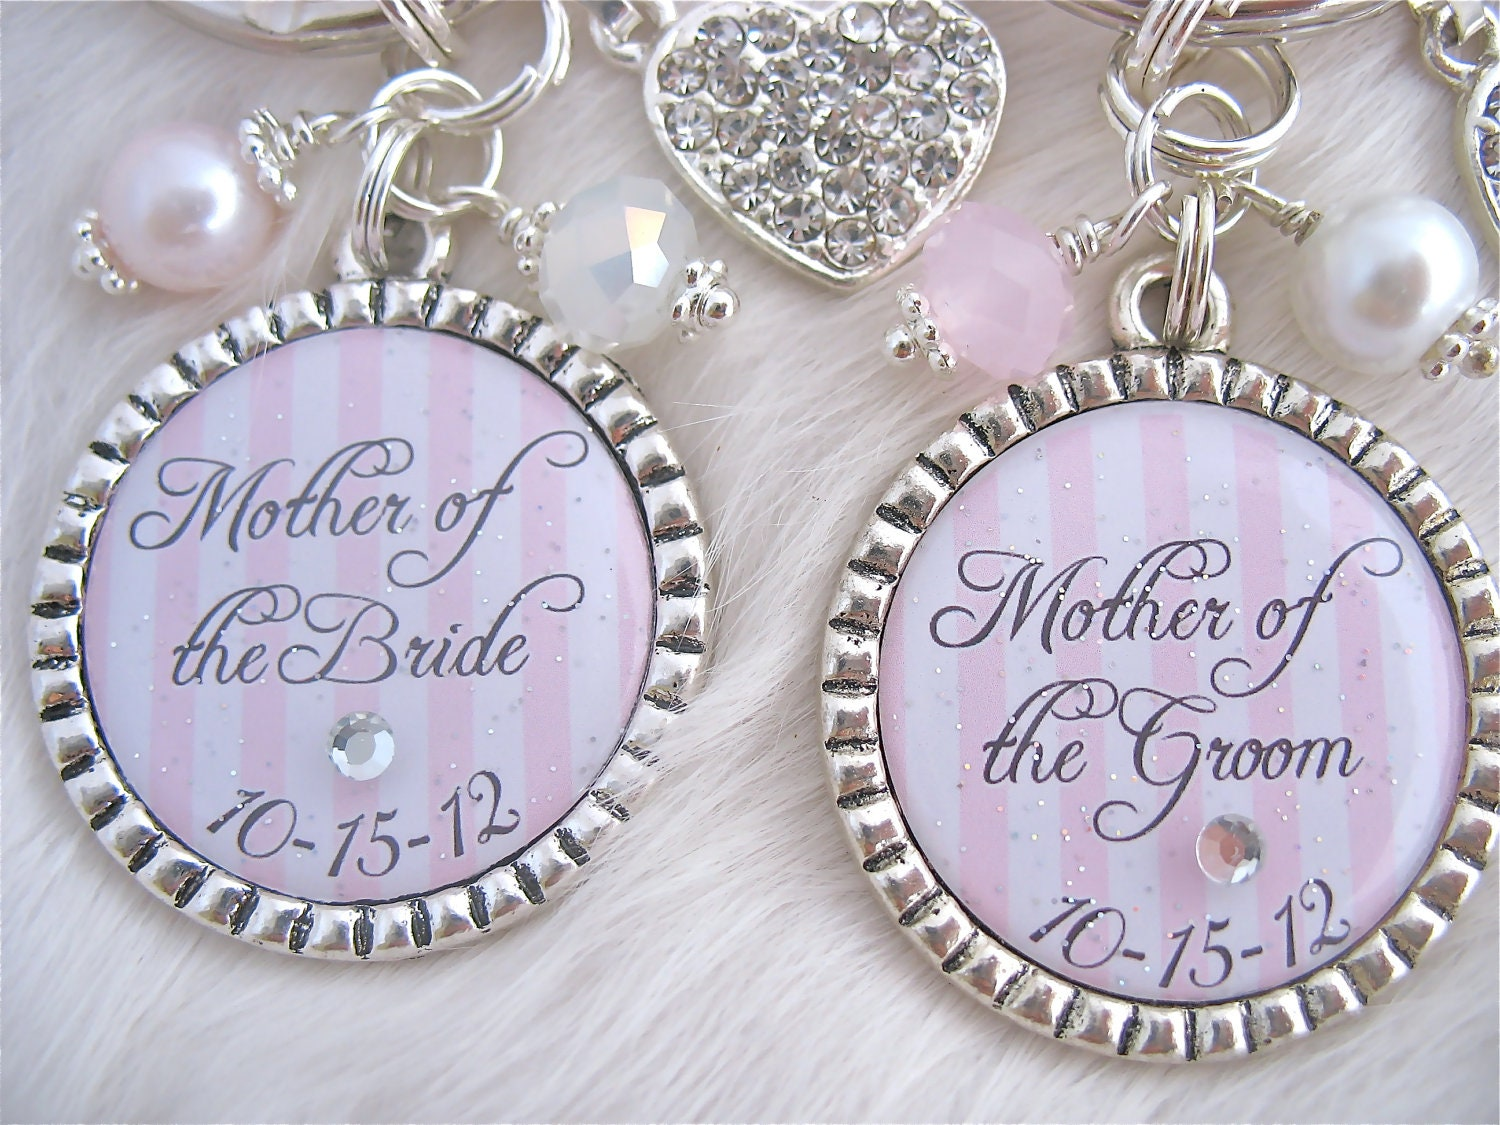 Wedding Gifts Mother Groom : MOTHER of the BRIDE Gift Mother of the Groom by MyBlueSnowflake